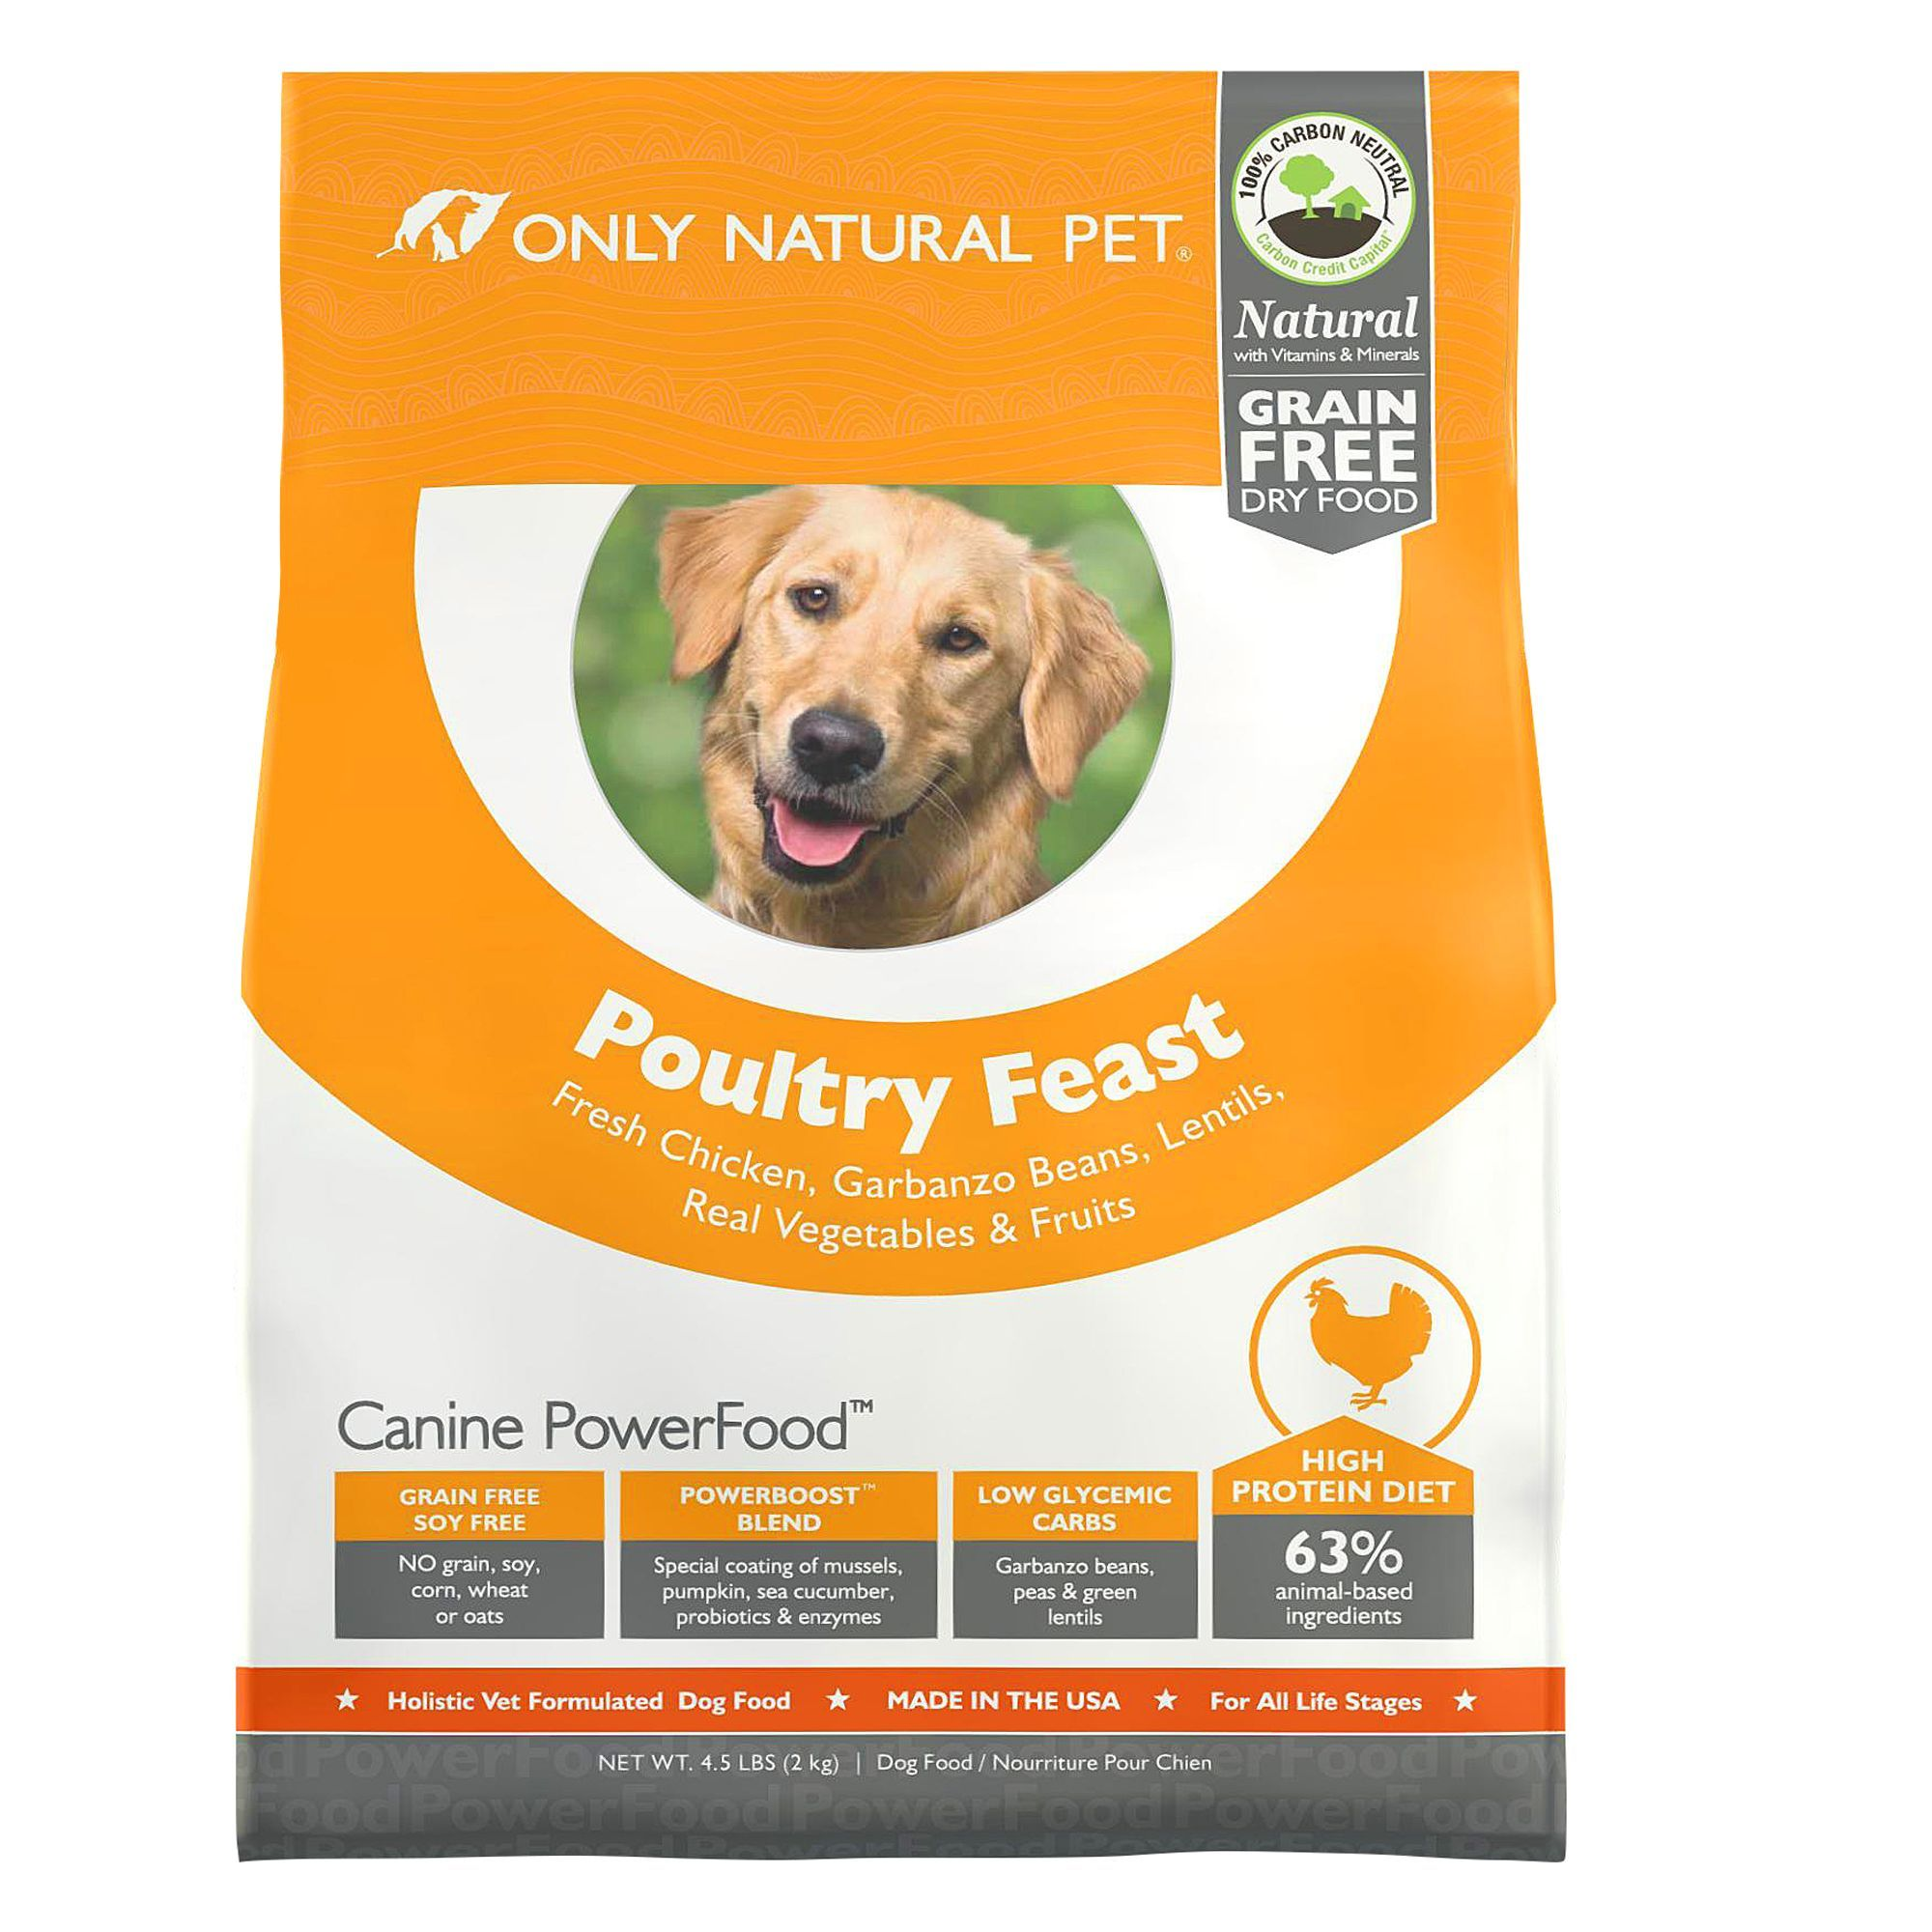 Only Natural Pet Canine Powerfood Dog Food Limited Ingredient